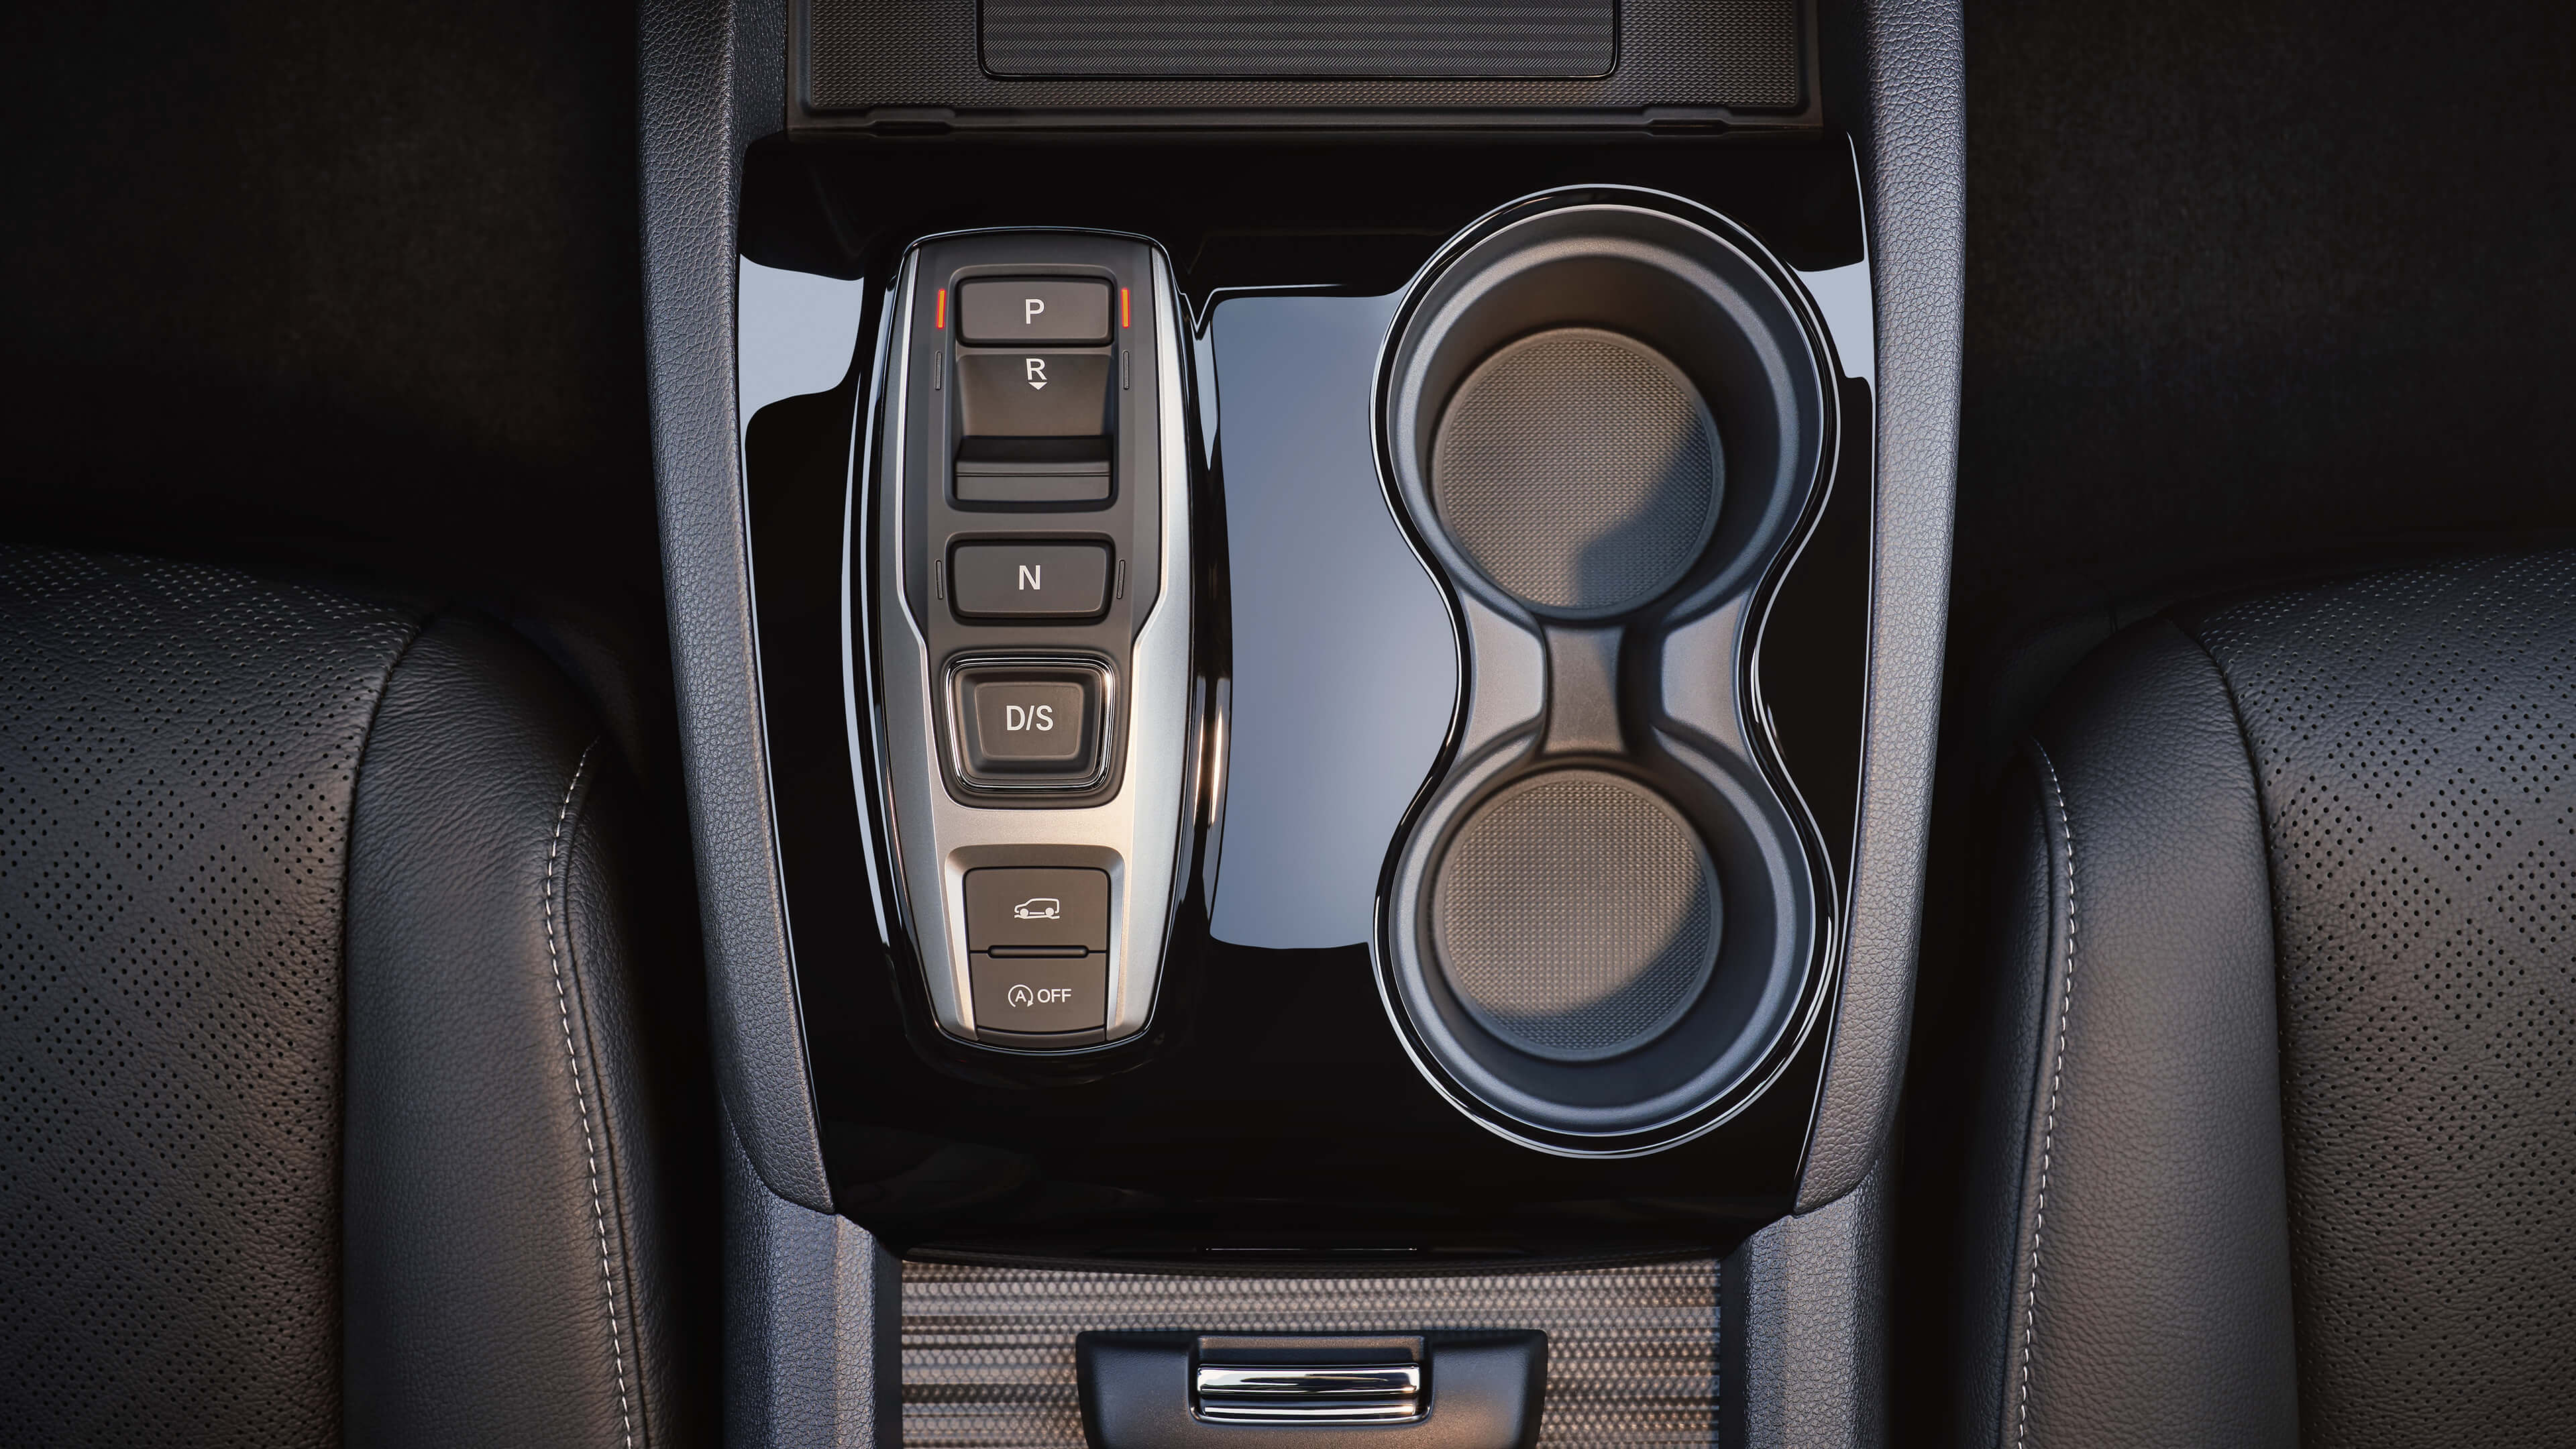 Interior overhead view of 2020 Honda Passport gear shifter and cupholders.